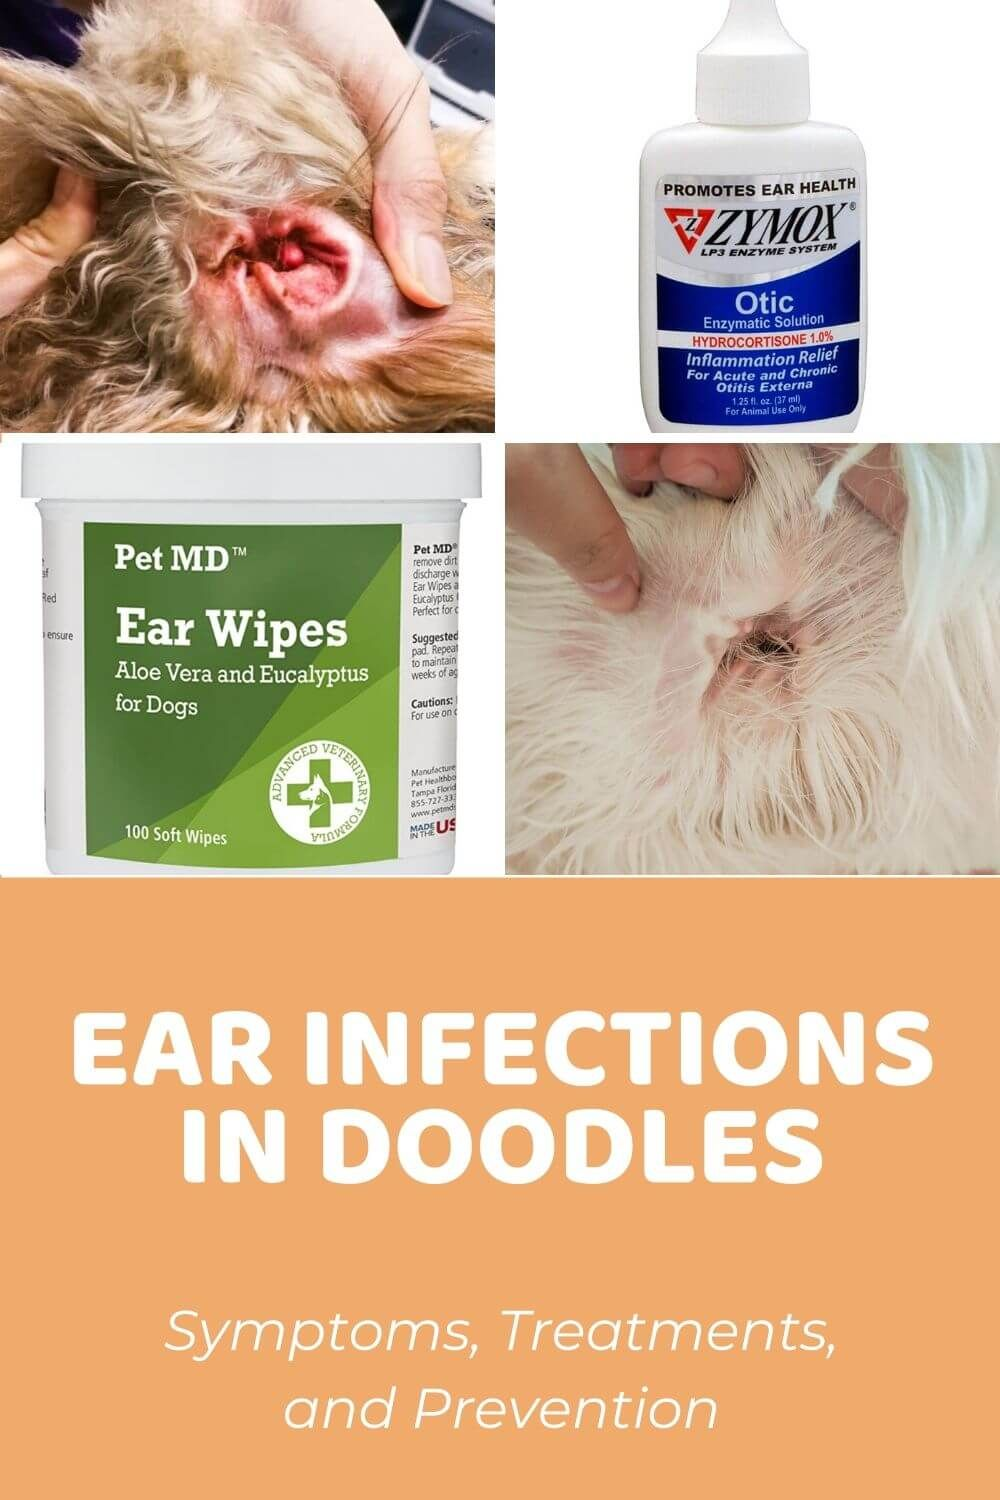 Dog Ear Infection In Doodles Symptoms Treatments And Prevention Dog Ear Infection Remedy Dogs Ears Infection Dog Ear Infection Treatment